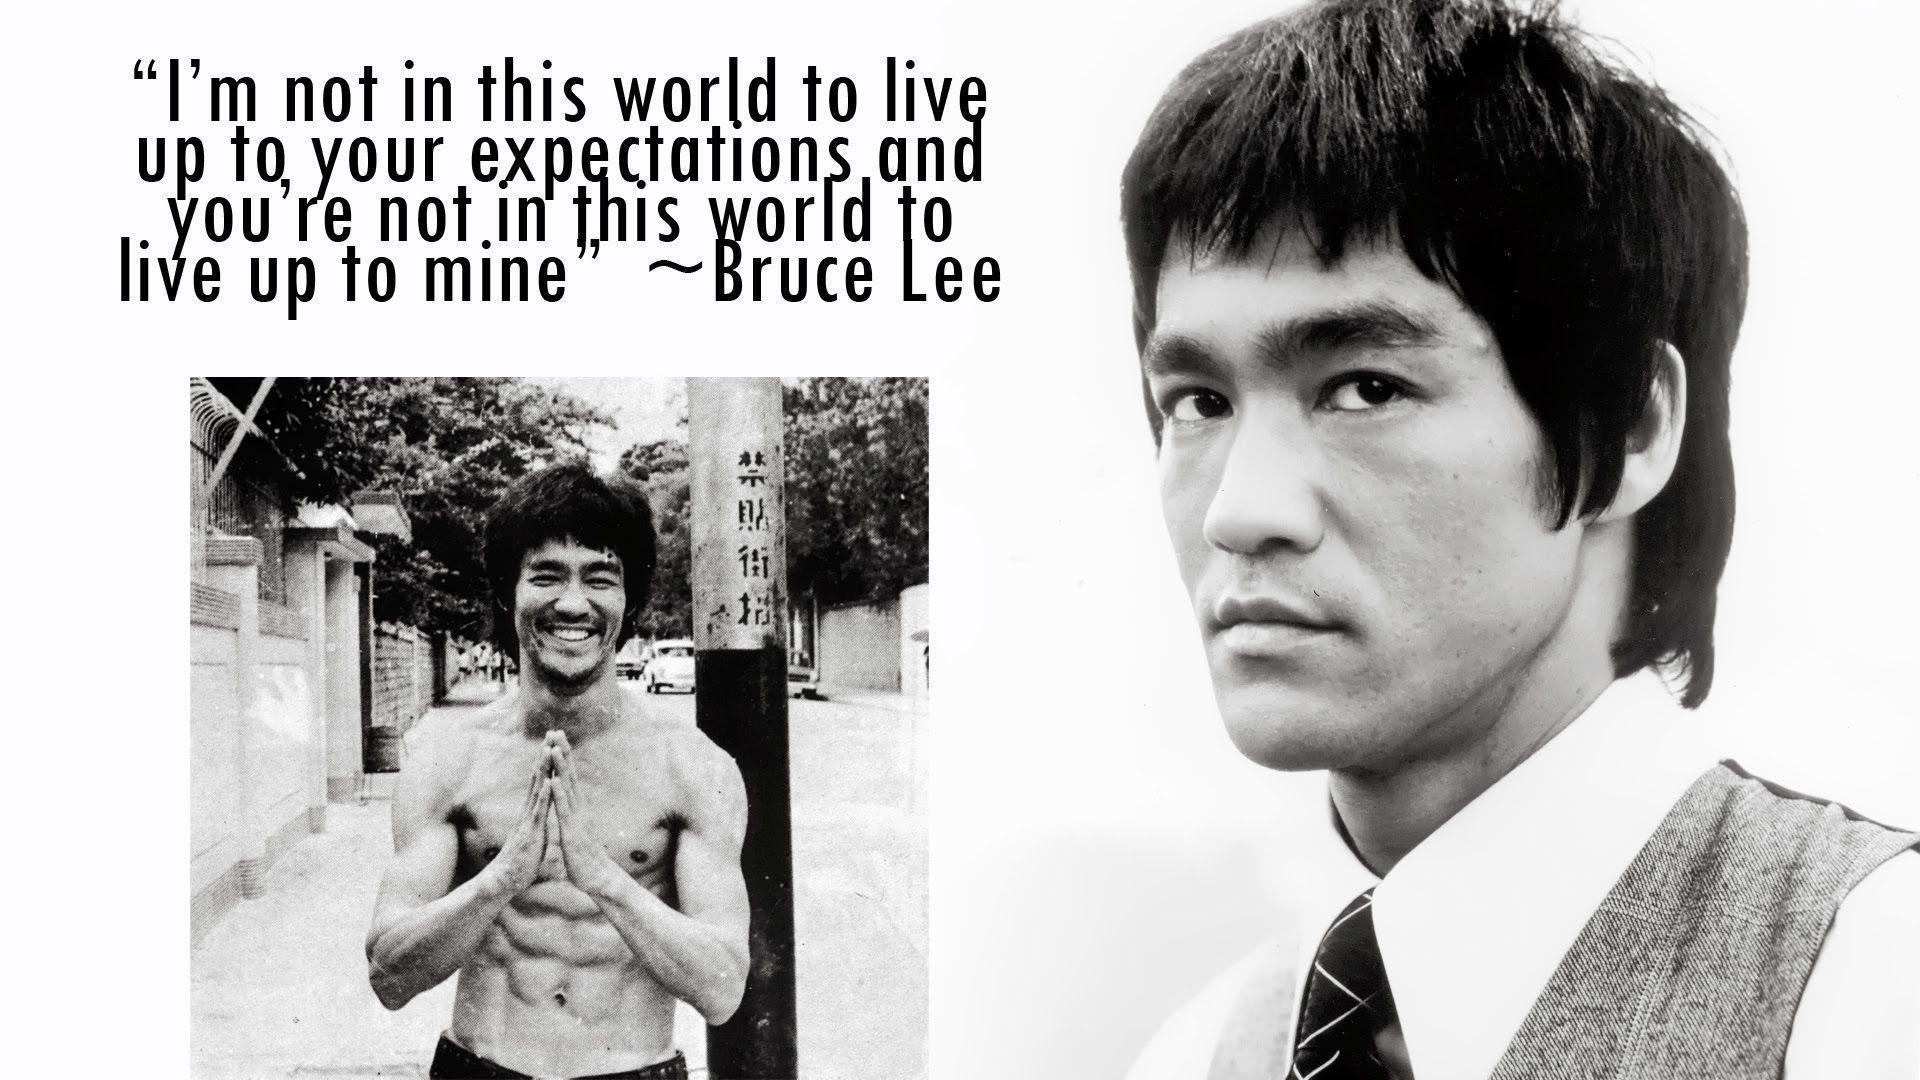 Bruce Lee Quote Desktop Wallpaper